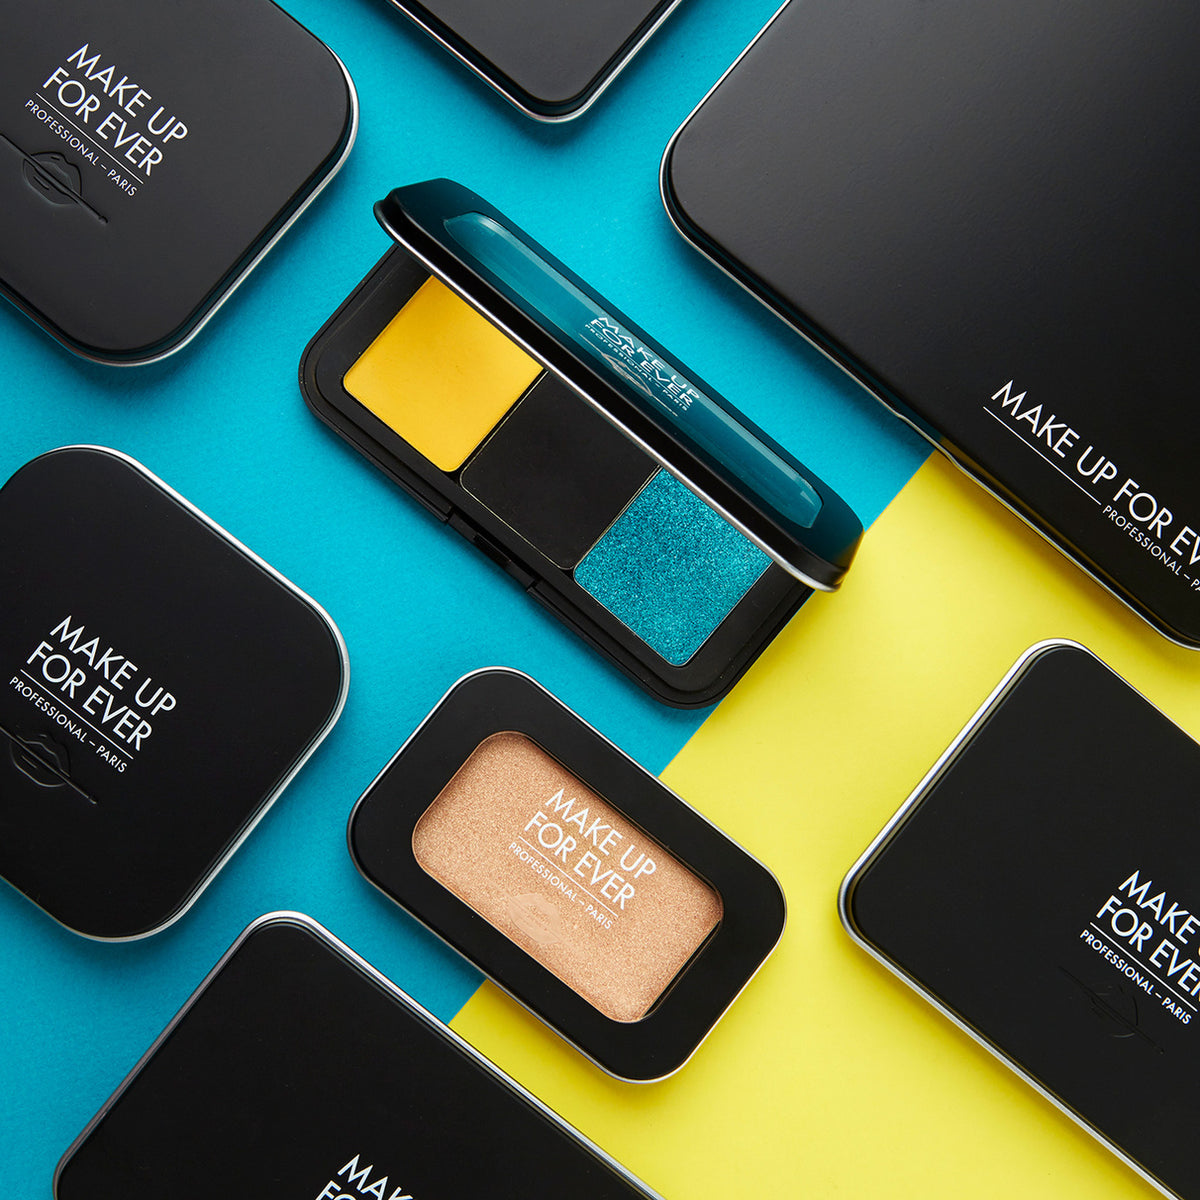 MUFE Refillable Makeup System